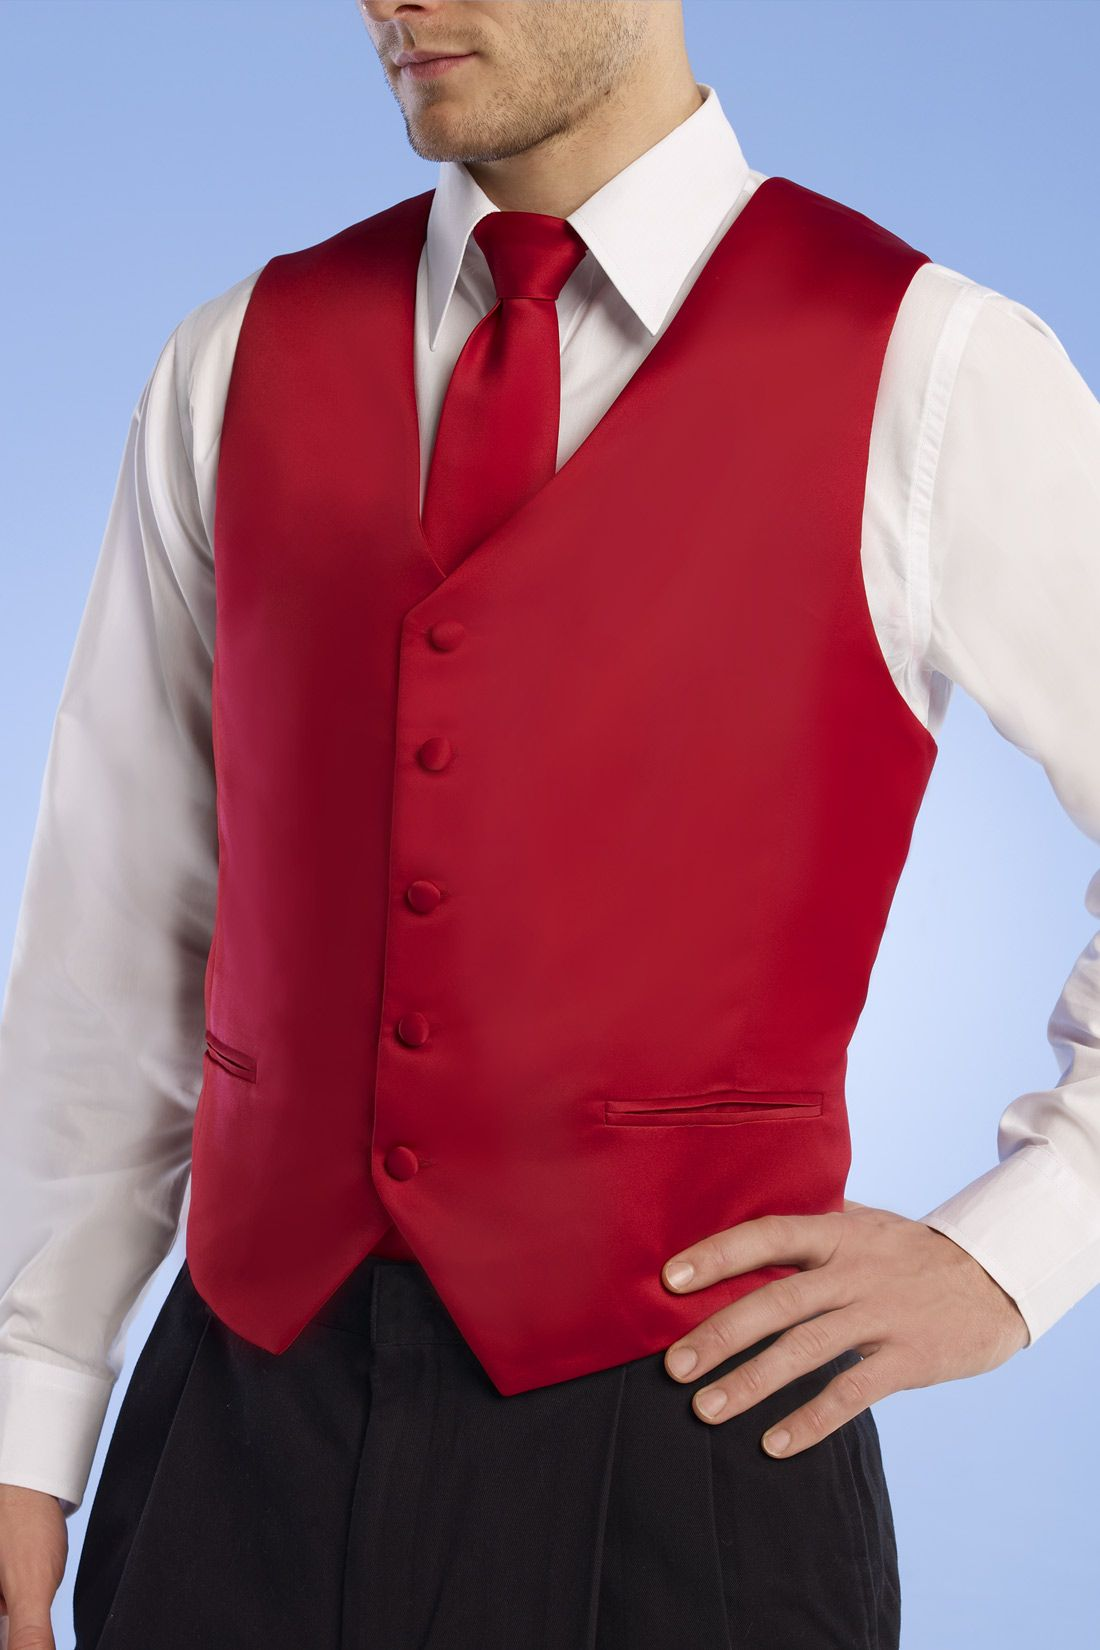 red vest and tie for groom and best man red and white